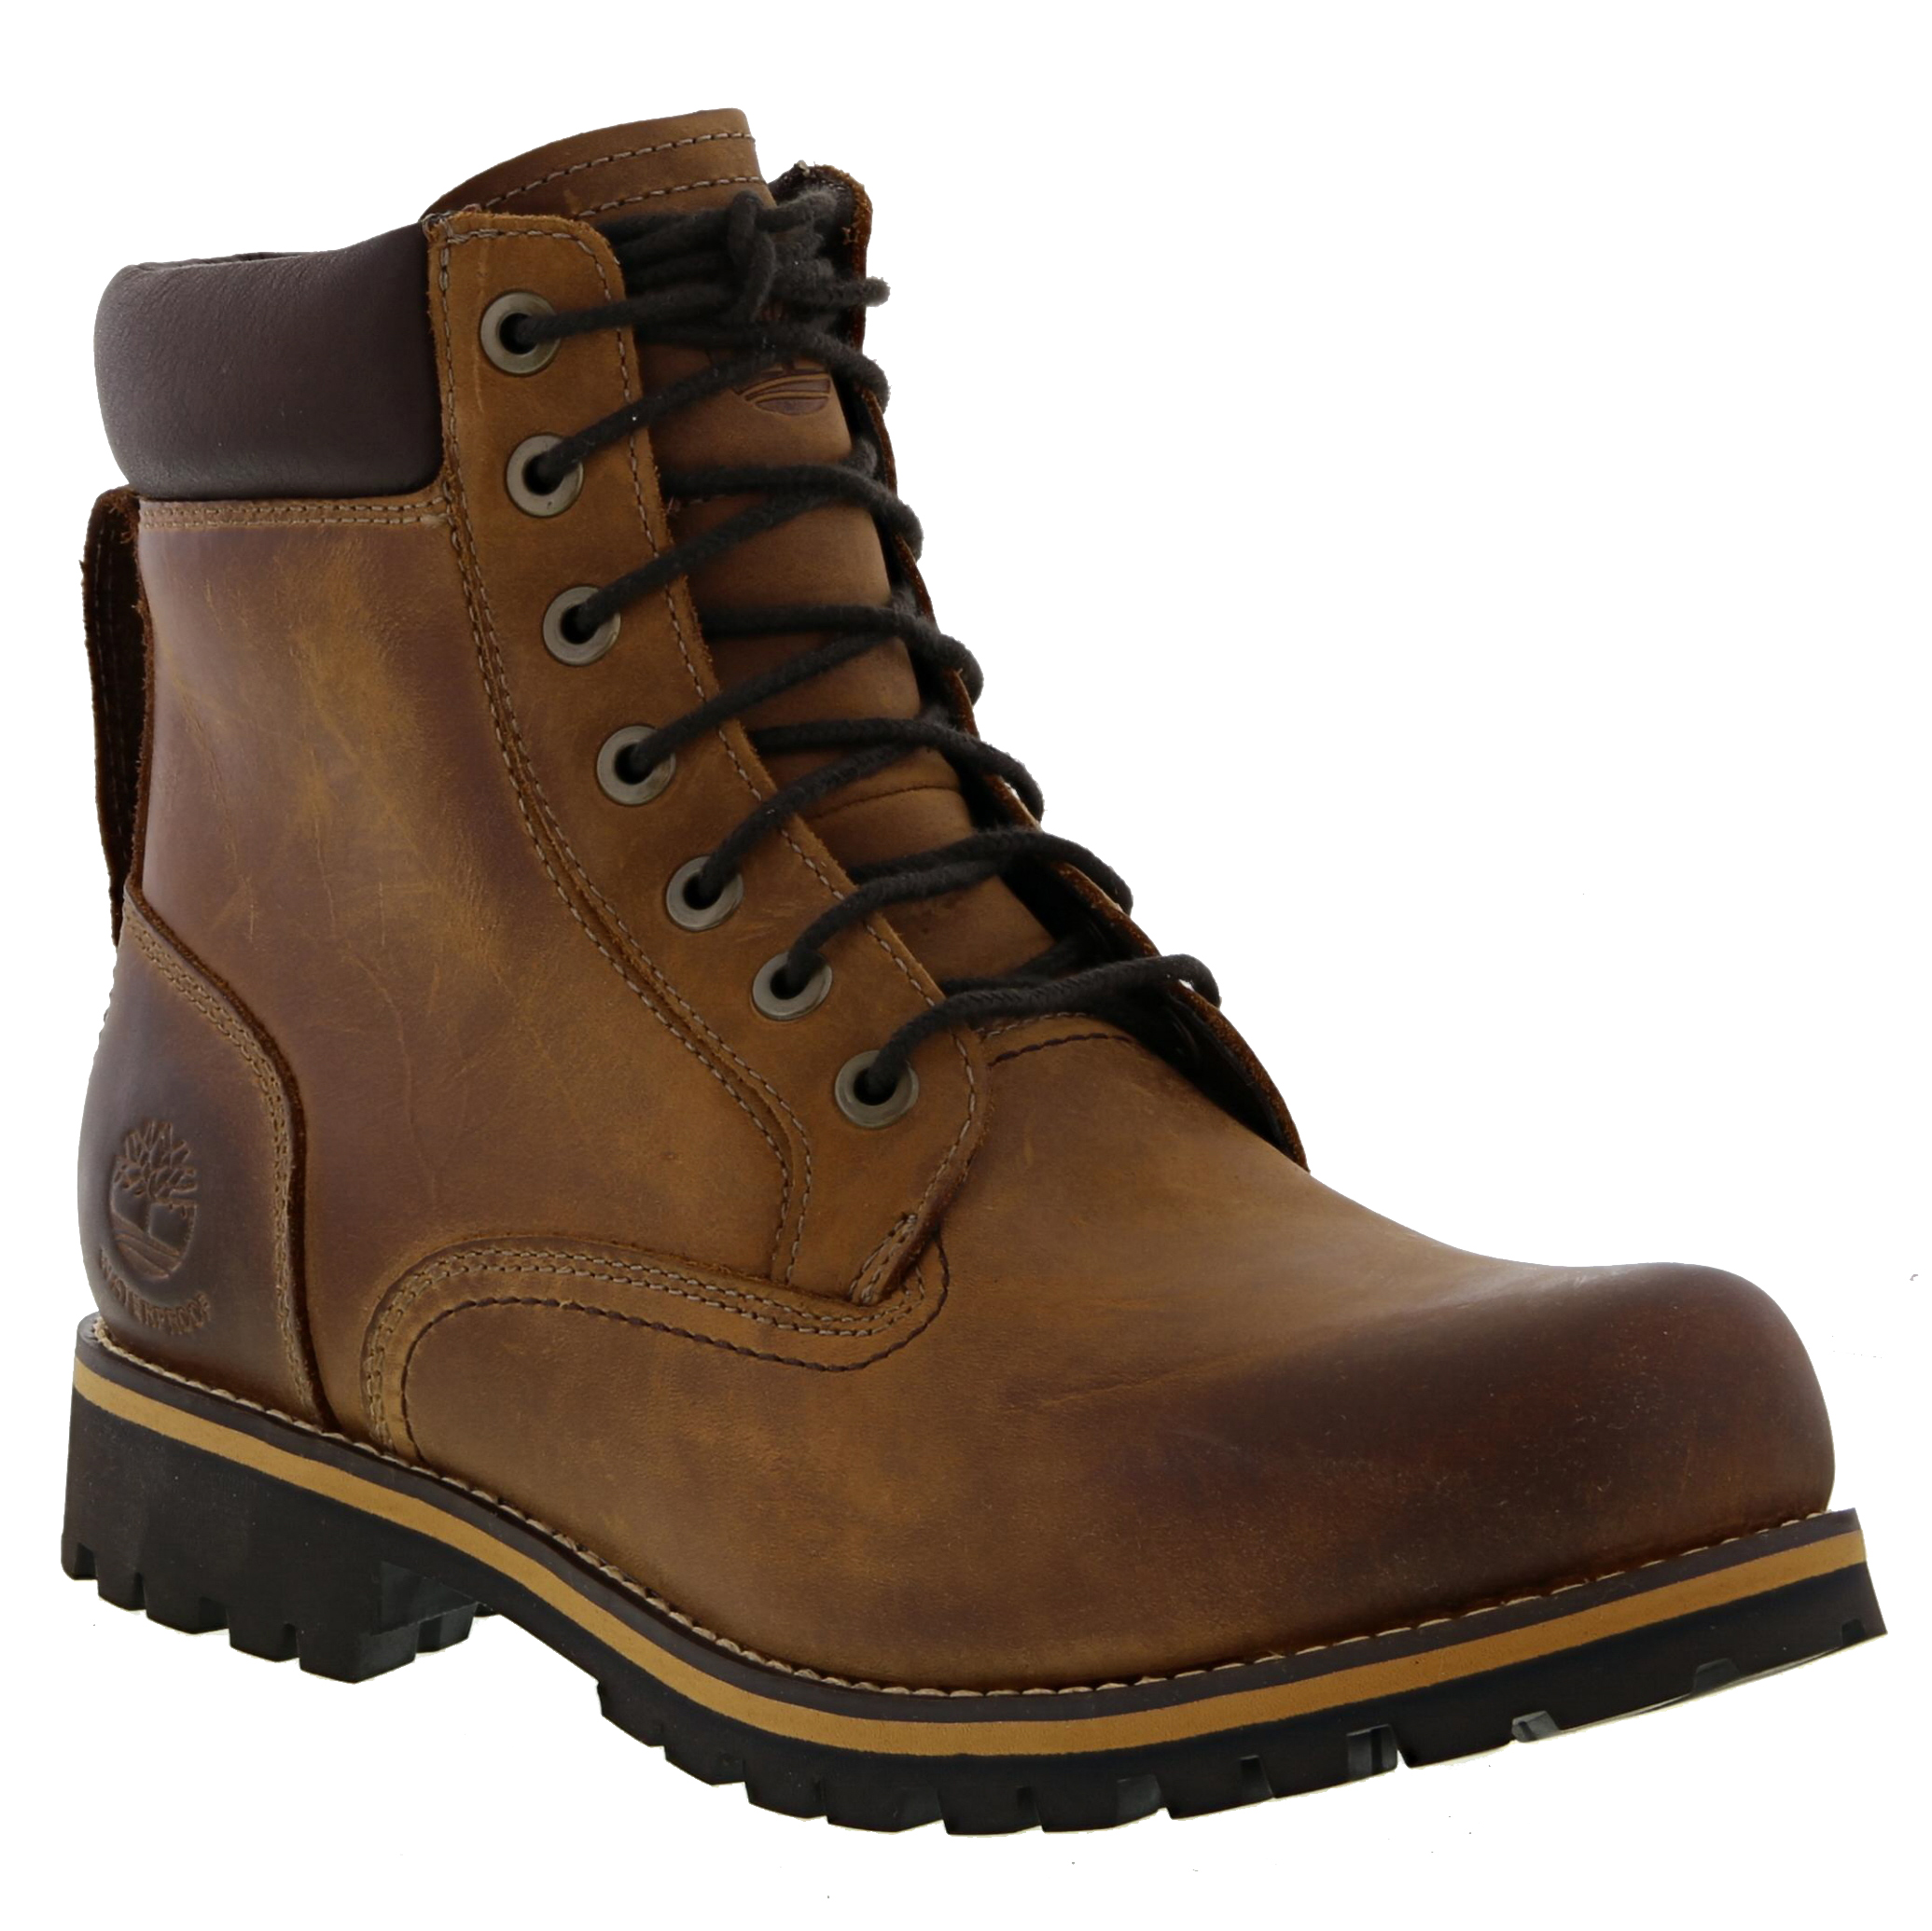 TIMBERLAND EARTH KEEPER Rugged 6 Inch Mens Waterproof Boots Size UK 7 14.5